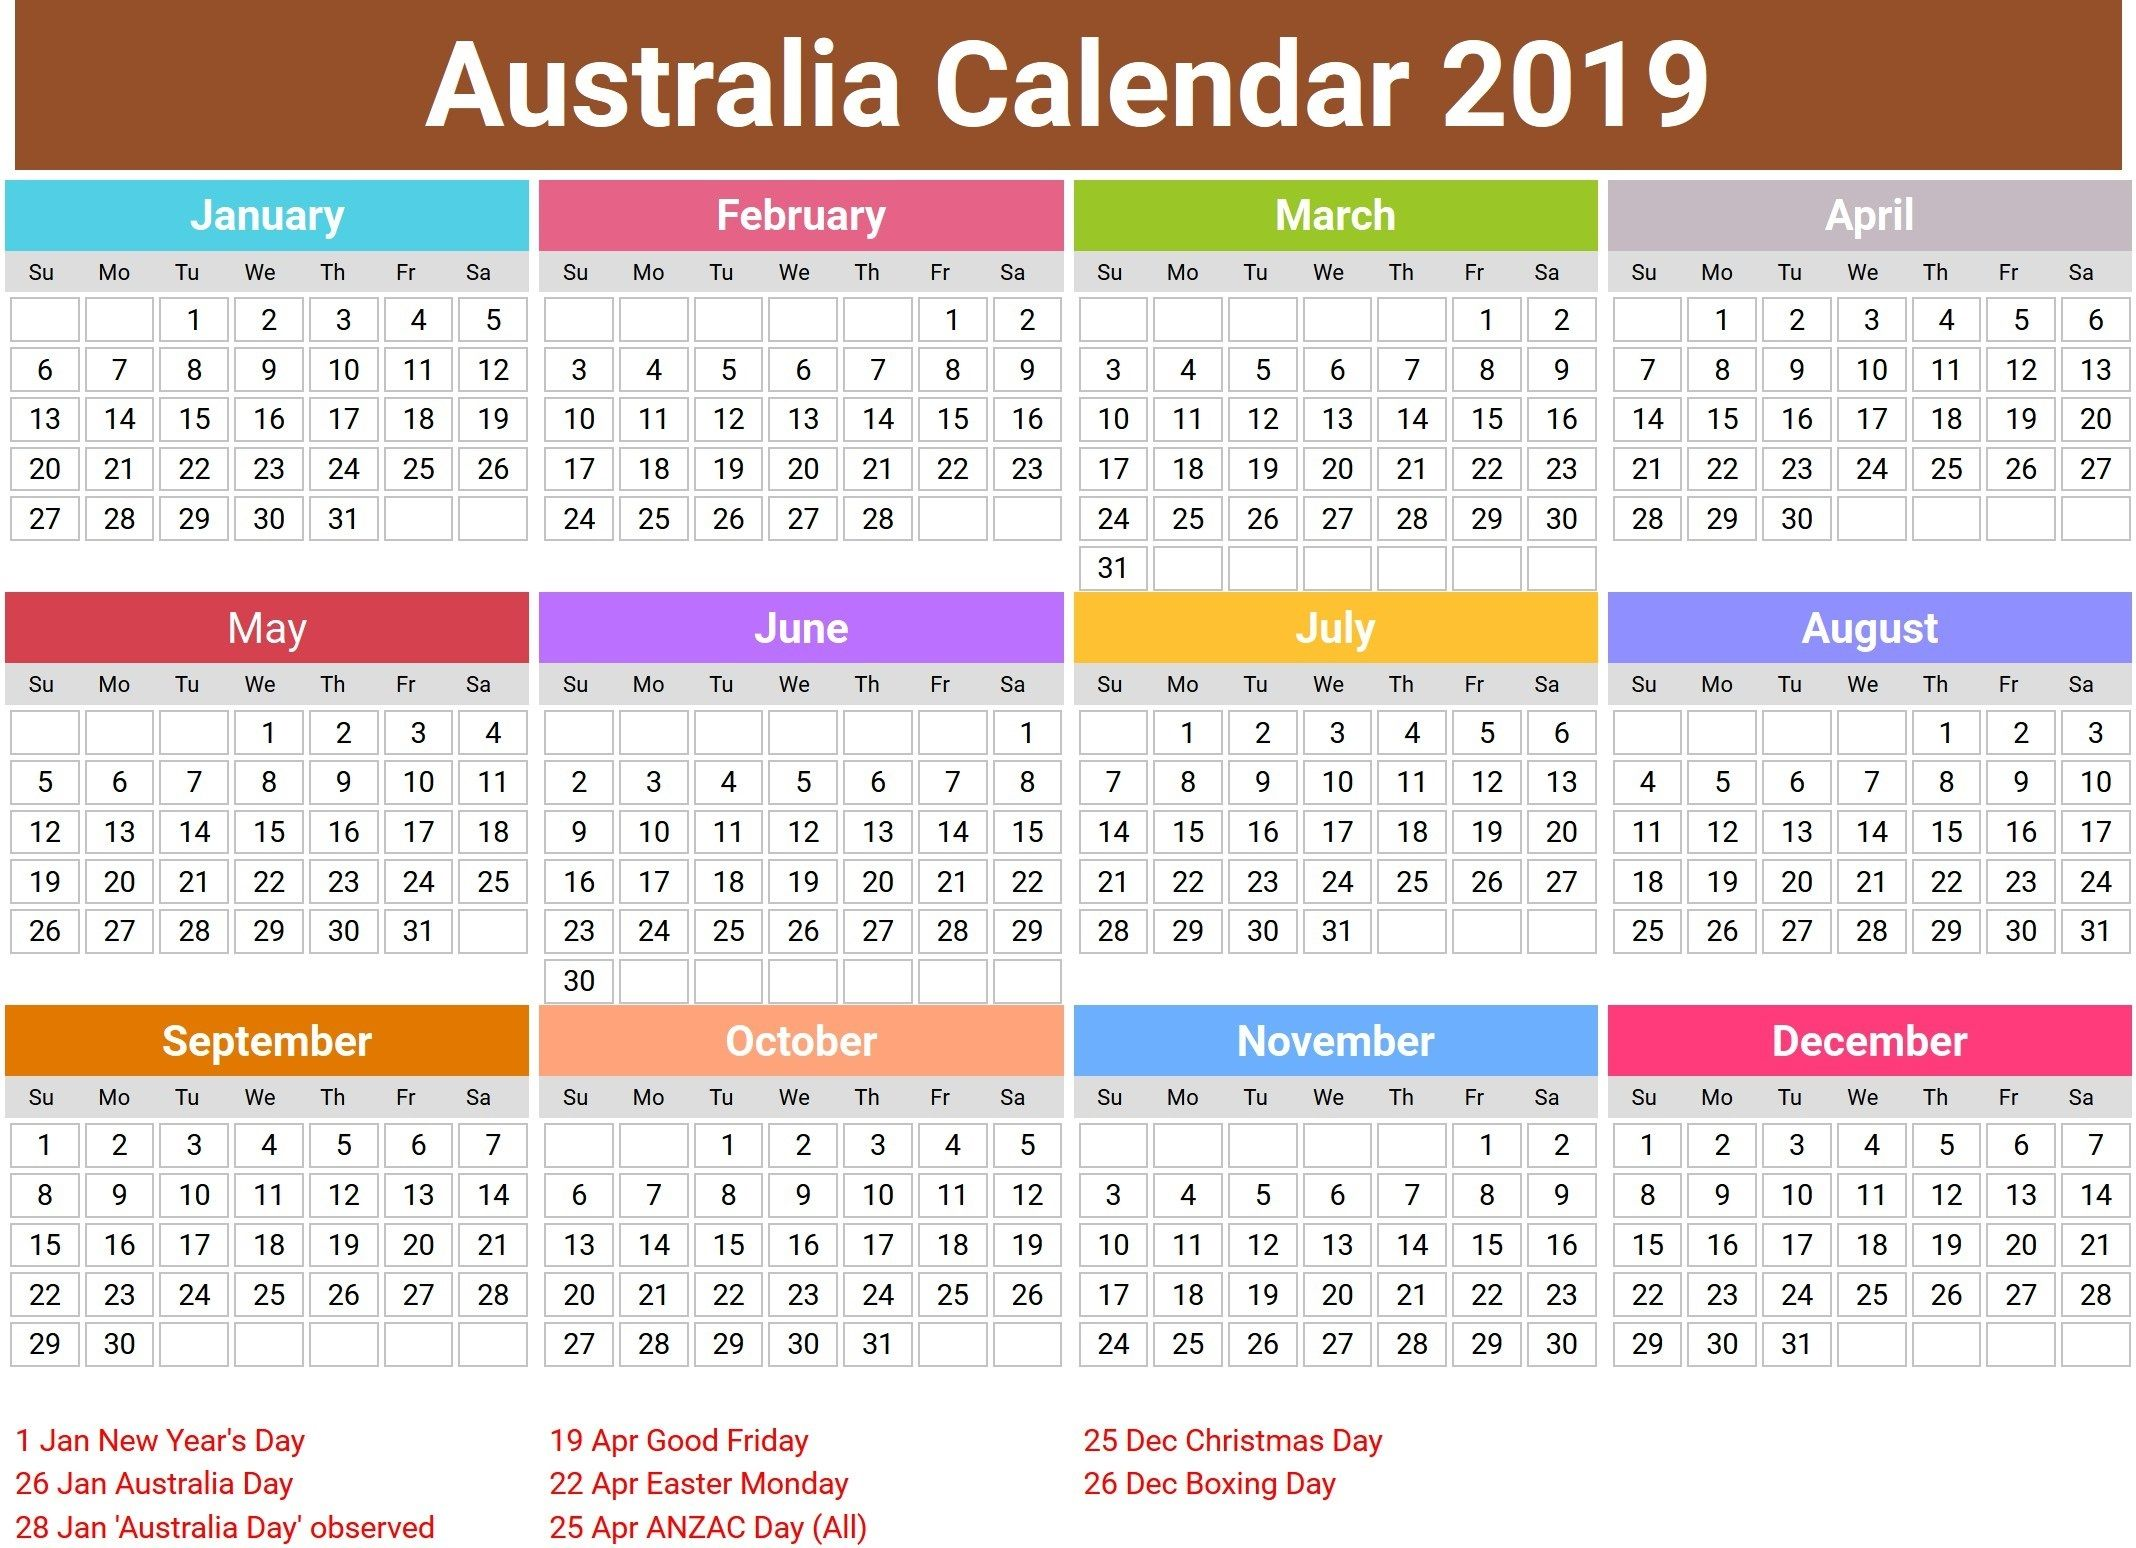 2019 Australian Calendar australia 2019 calendar with holidays | 2019 Calendars | Printable